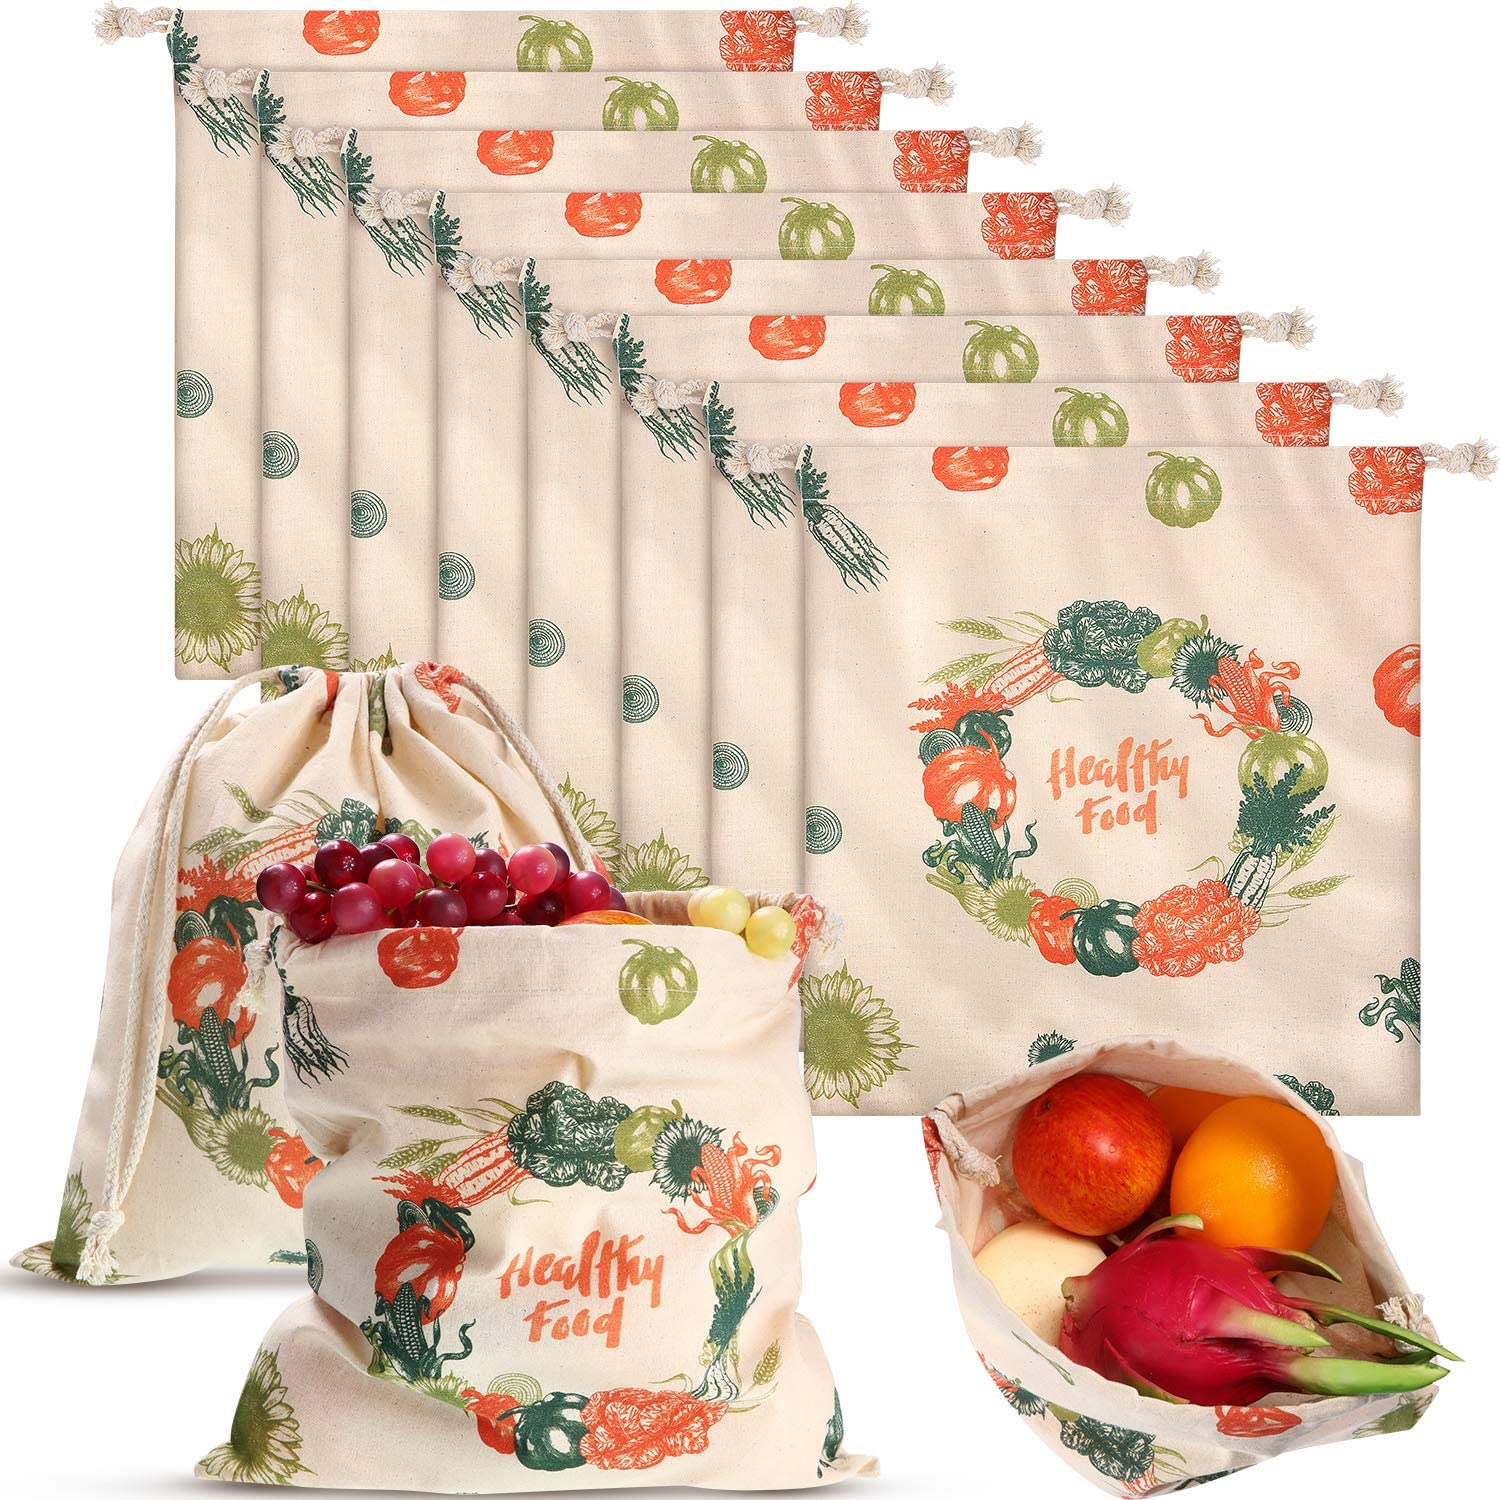 10 Pieces 12 x 13.4 Inch Reusable Cotton Bread Bags Produce Bags Large Flour Sack Bags Washable Grocery Linen Drawstring Bags for Laundry Grocery Vegetable Food Storage Organizing